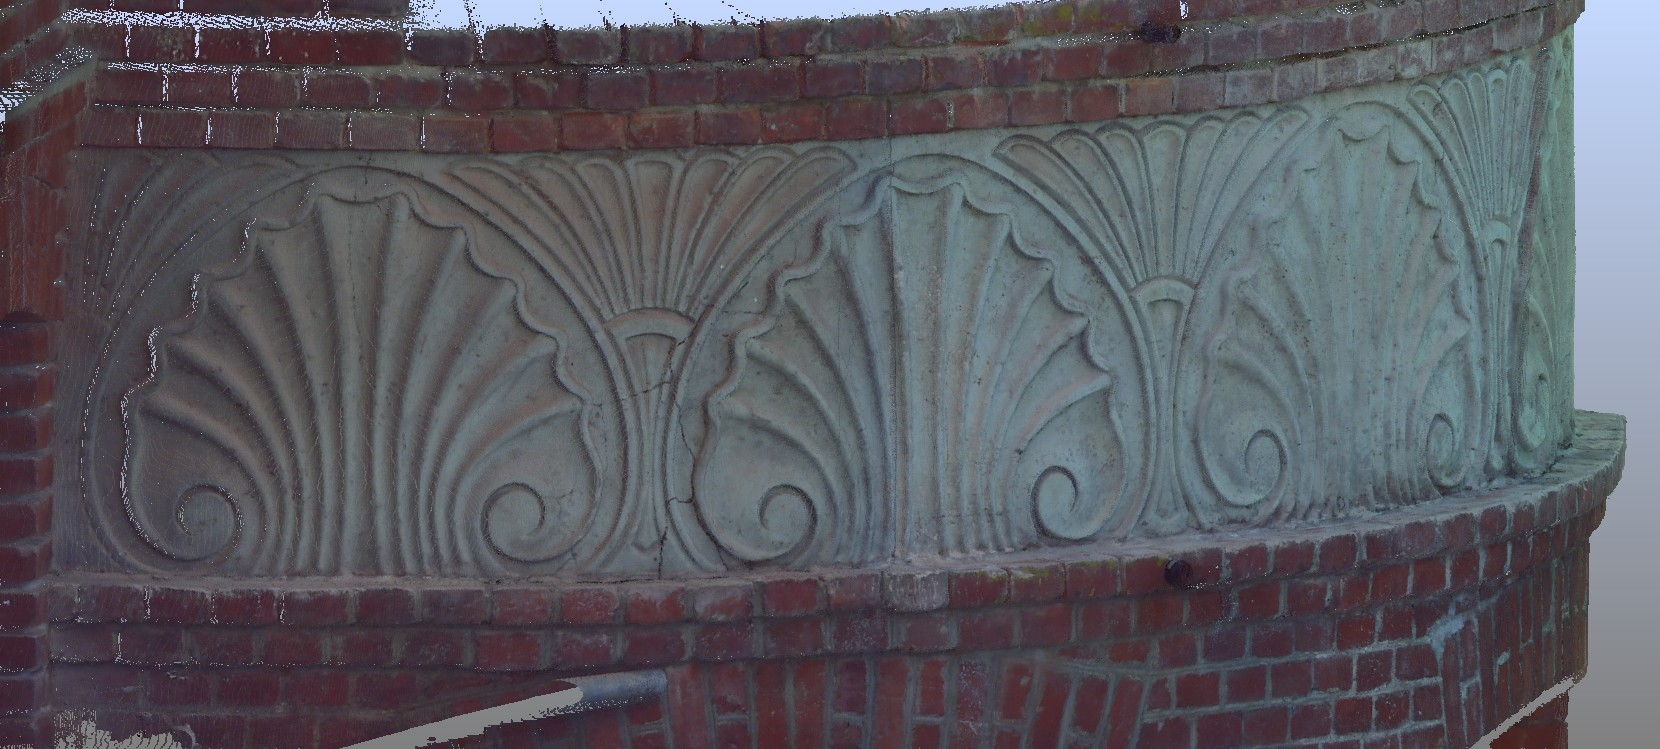 3D laser scan brickwork2.jpg